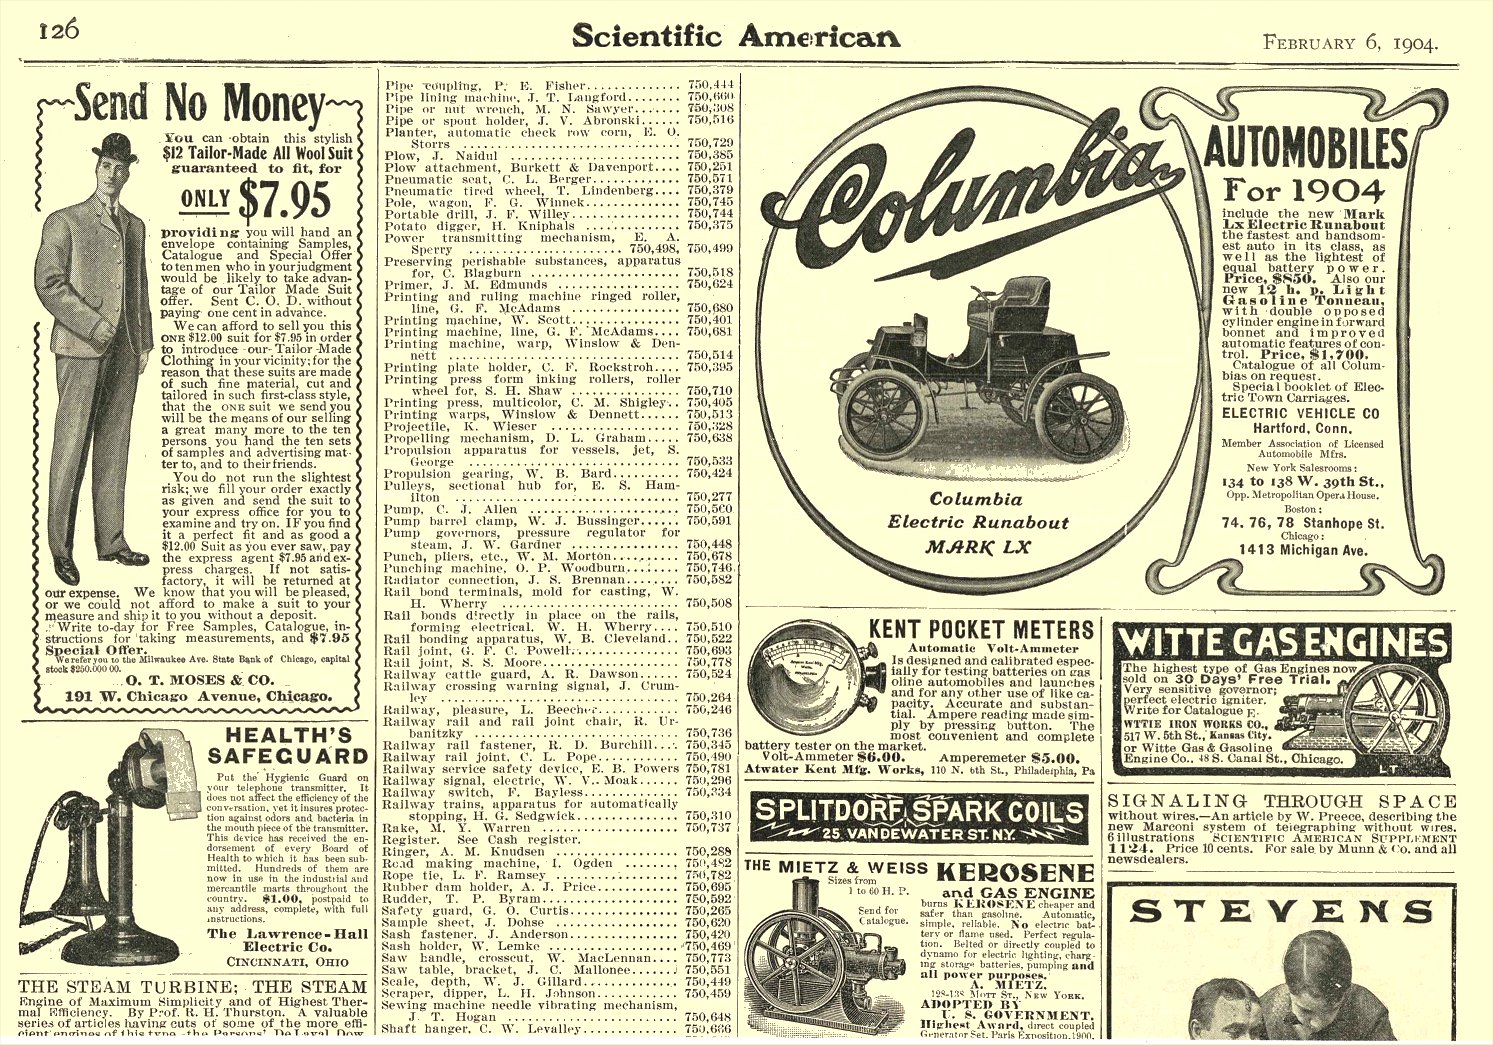 1904 COLUMBIA Electric Automobile Electric Runabout MARK LX Electric Vehicle Co Hartford, CONN Scientific American February 6, 1904 10.5″x7″ page 126